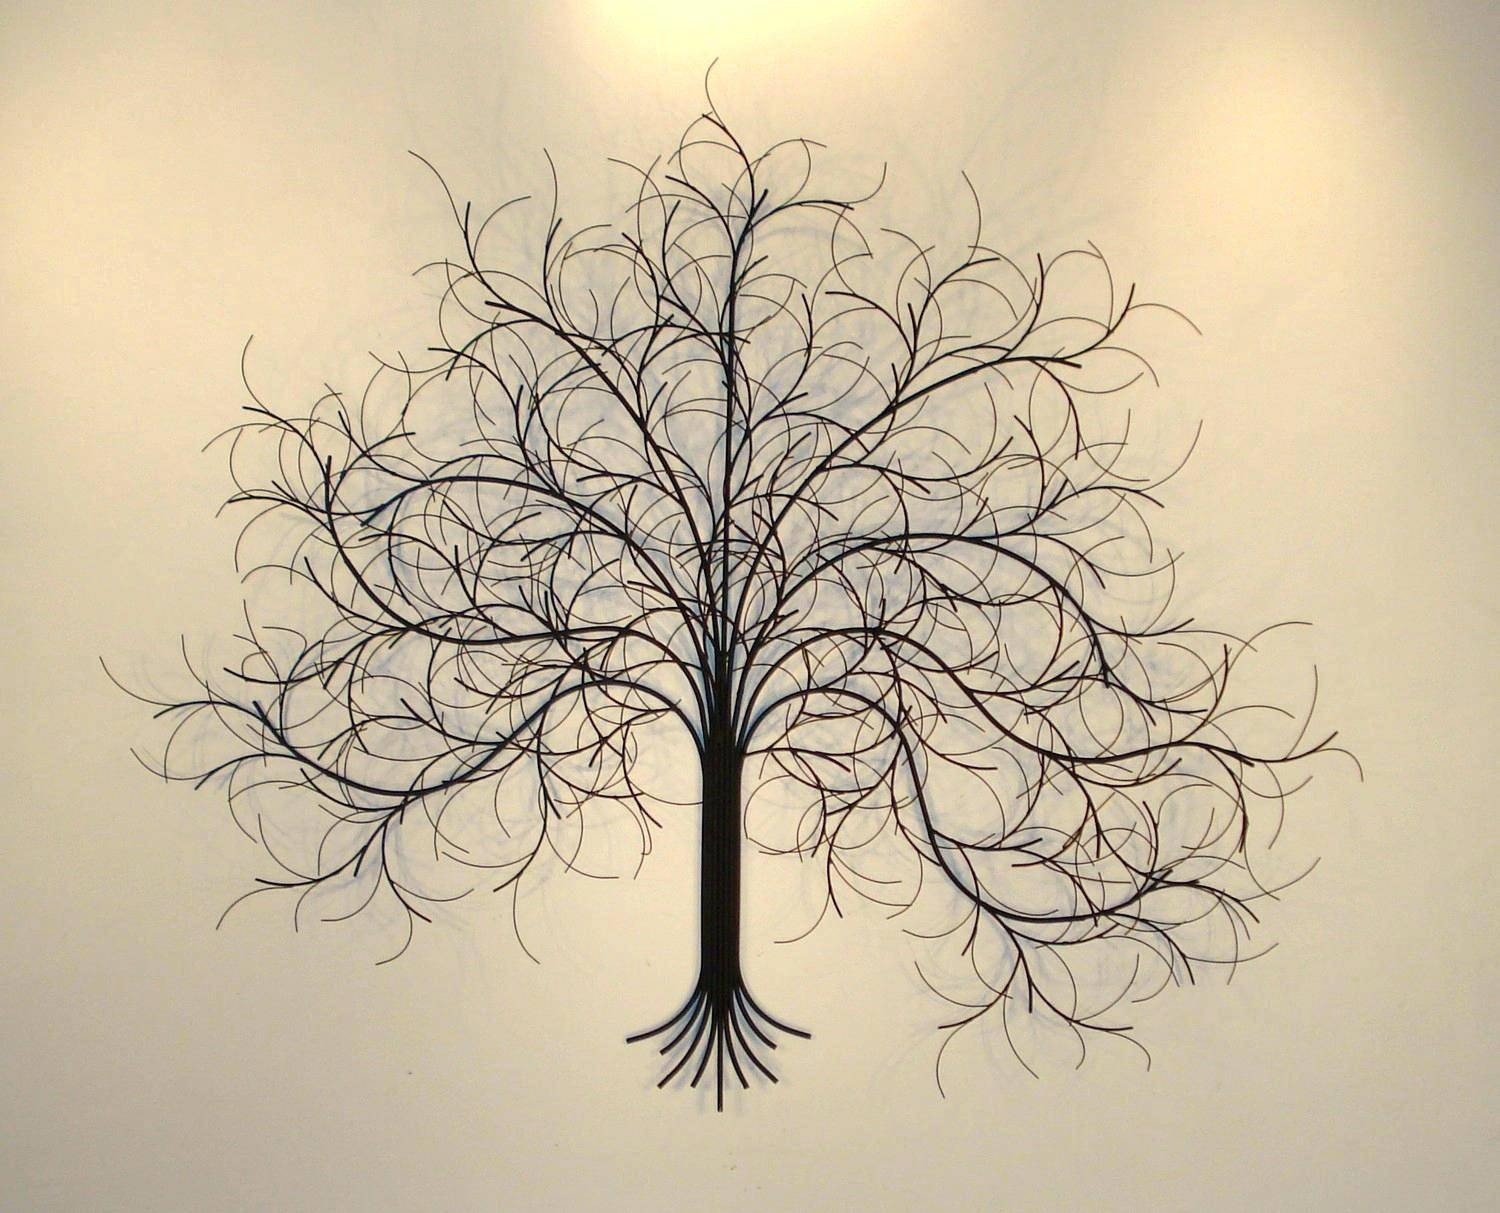 Wall Decor: Impressive Kohl's Metal Wall Decor For Your House With Regard To Most Popular Kohls Metal Tree Wall Art (View 17 of 30)